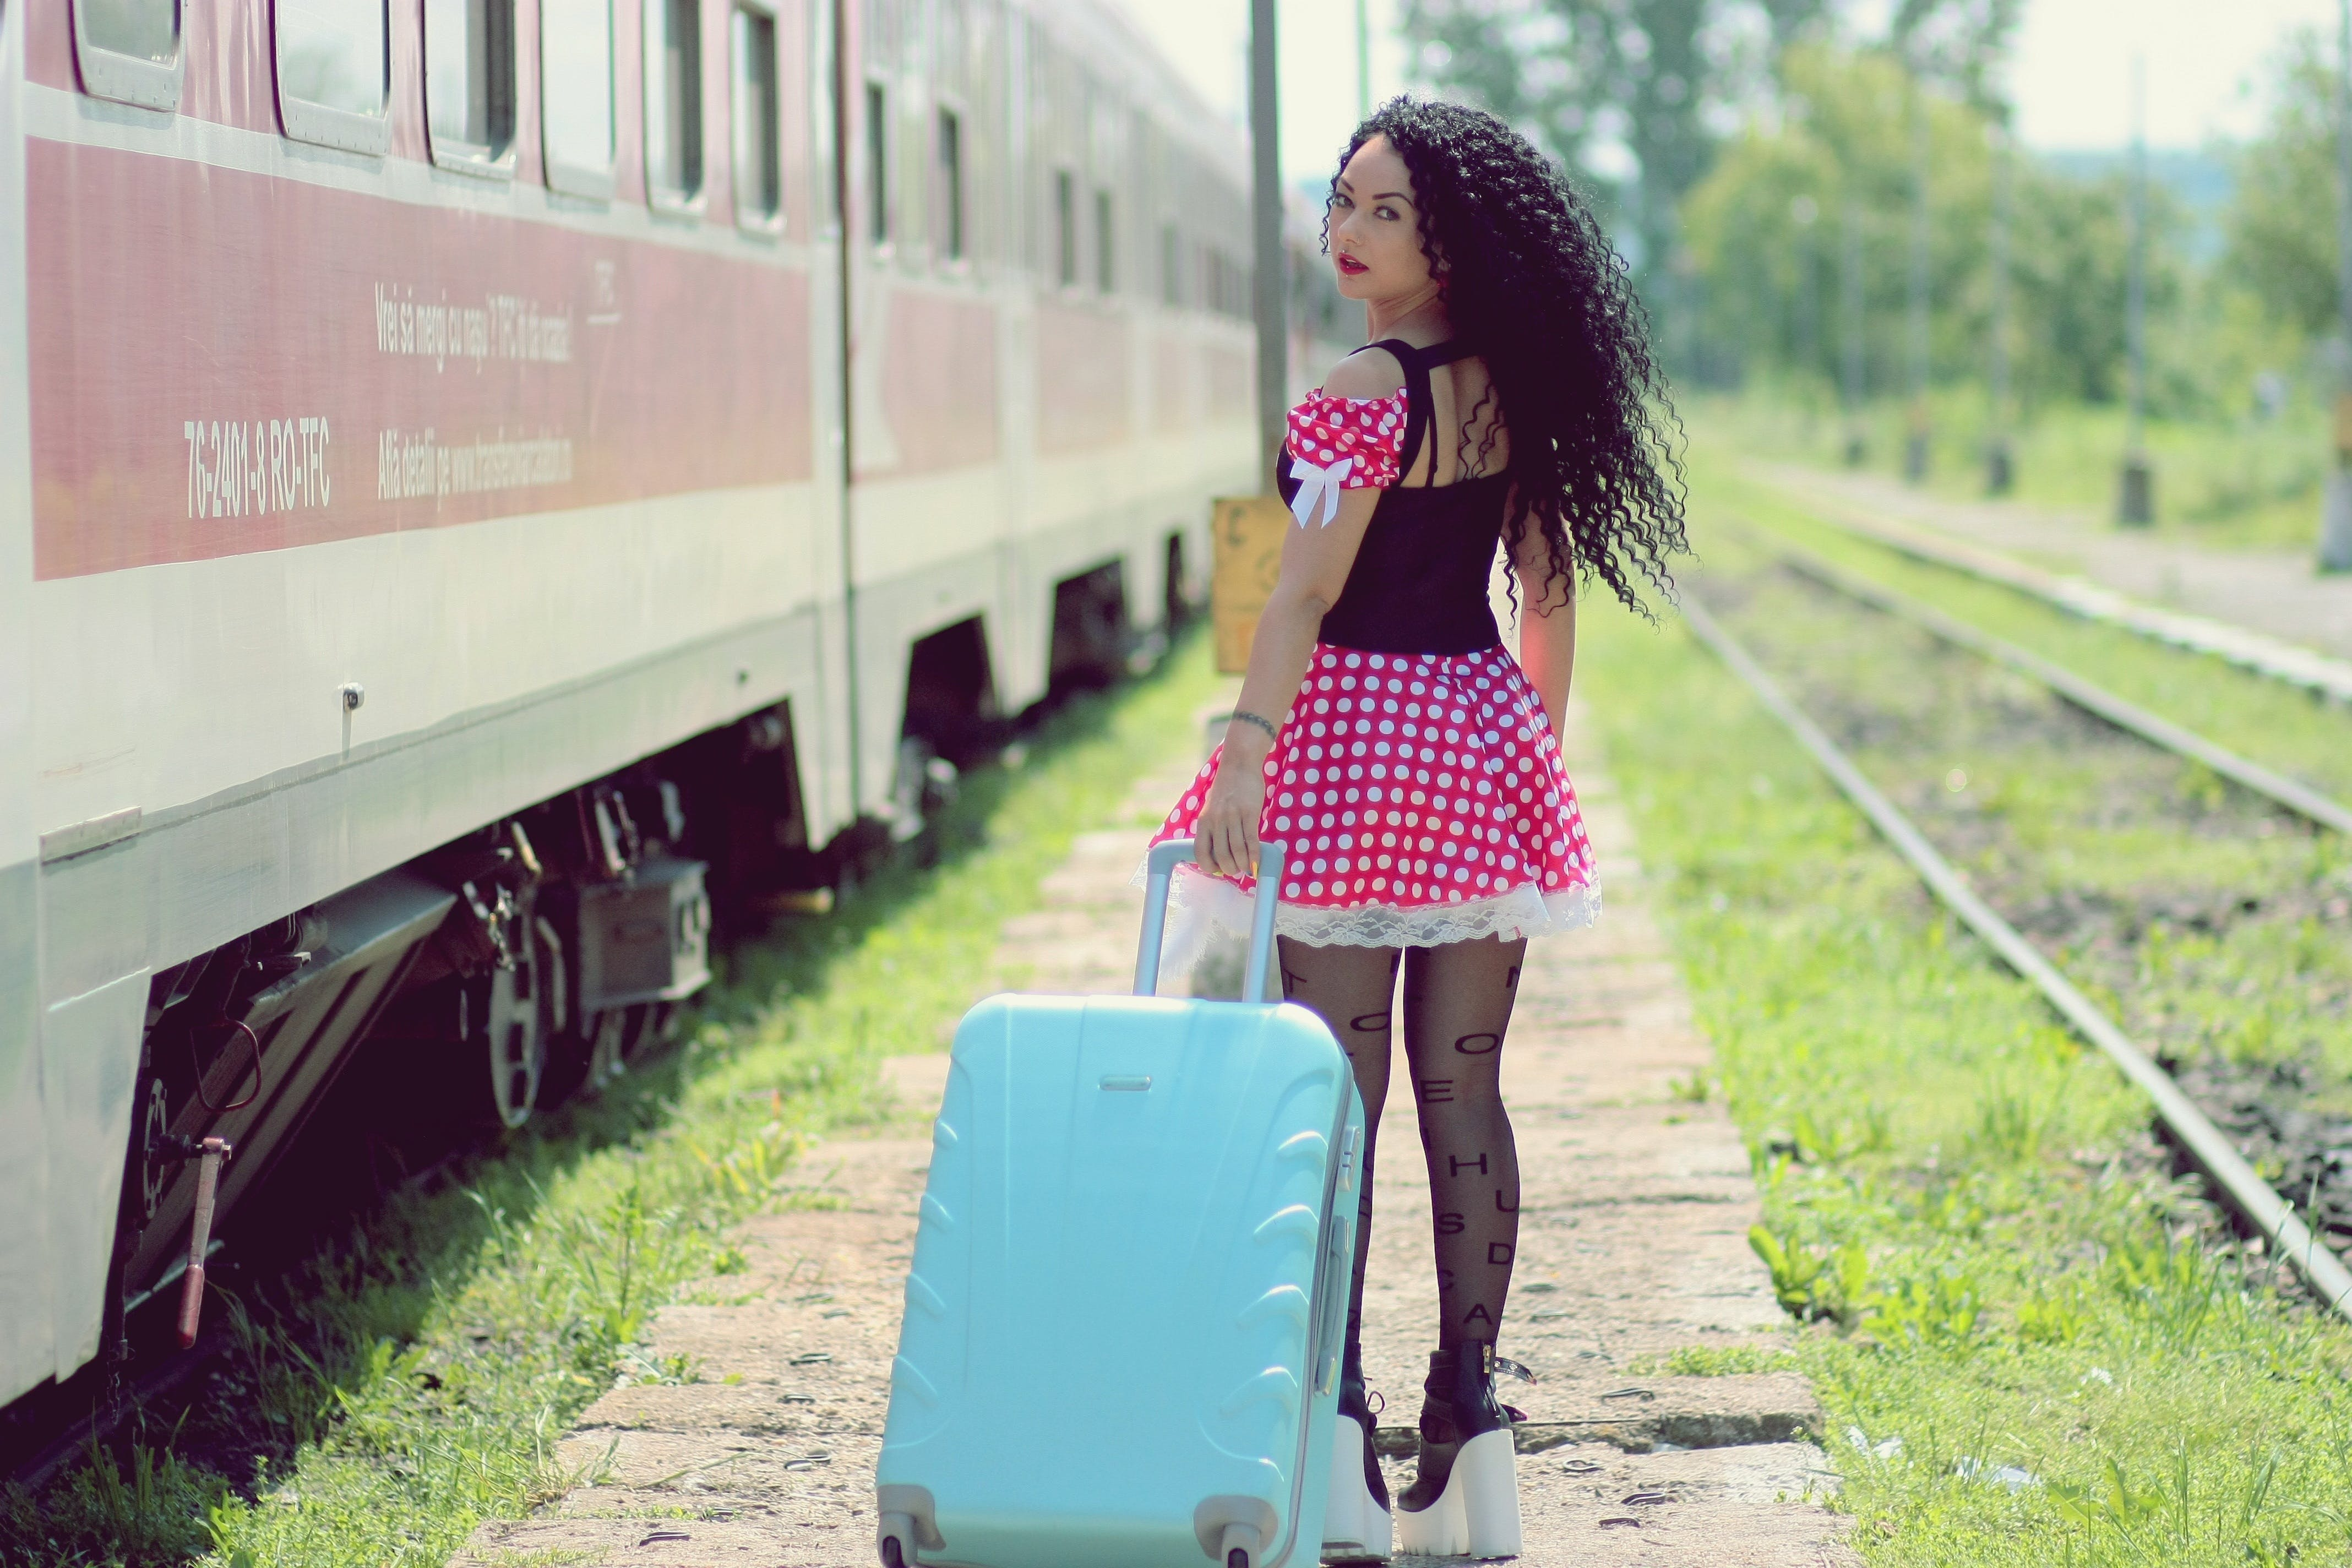 Young Woman With Luggage Standing on Train in City